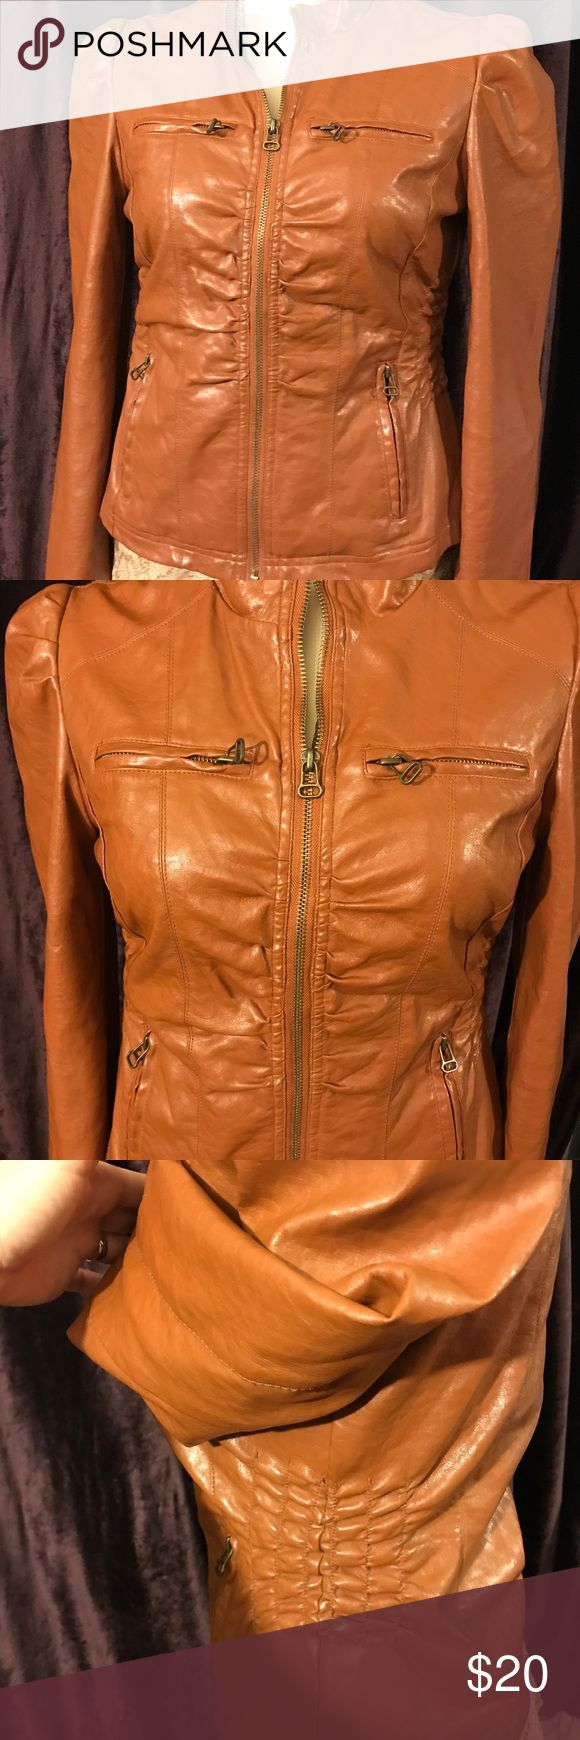 Cognac Vegan leather jacket Medium Very cute faux leather washable jacket in a beautiful cognac/caramel brown for fall. Size Medium. New Look Jackets & Coats